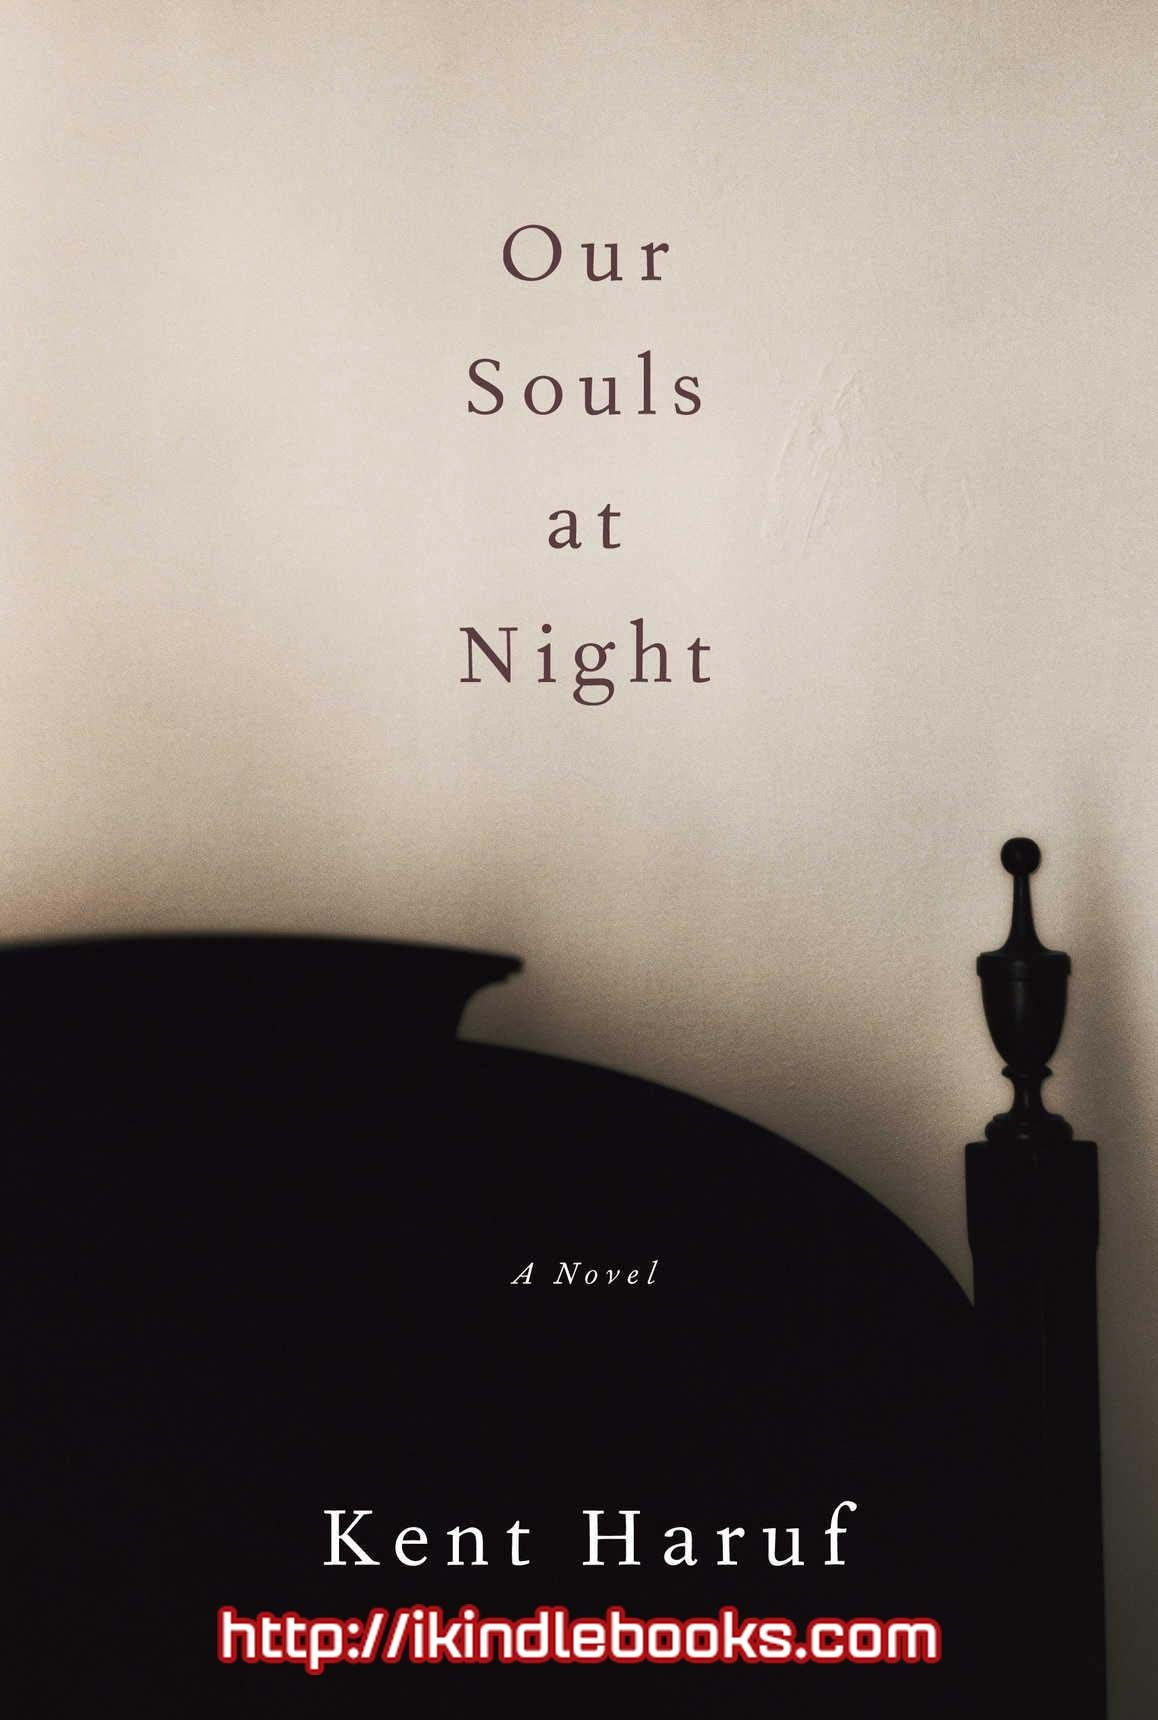 Our souls at night ebook epubpdfprcmobiazw3 free download our souls at night ebook epubpdfprcmobiazw3 free download author kent haruf ebook our souls at night full free download kindlebook ebook freebook fandeluxe Images